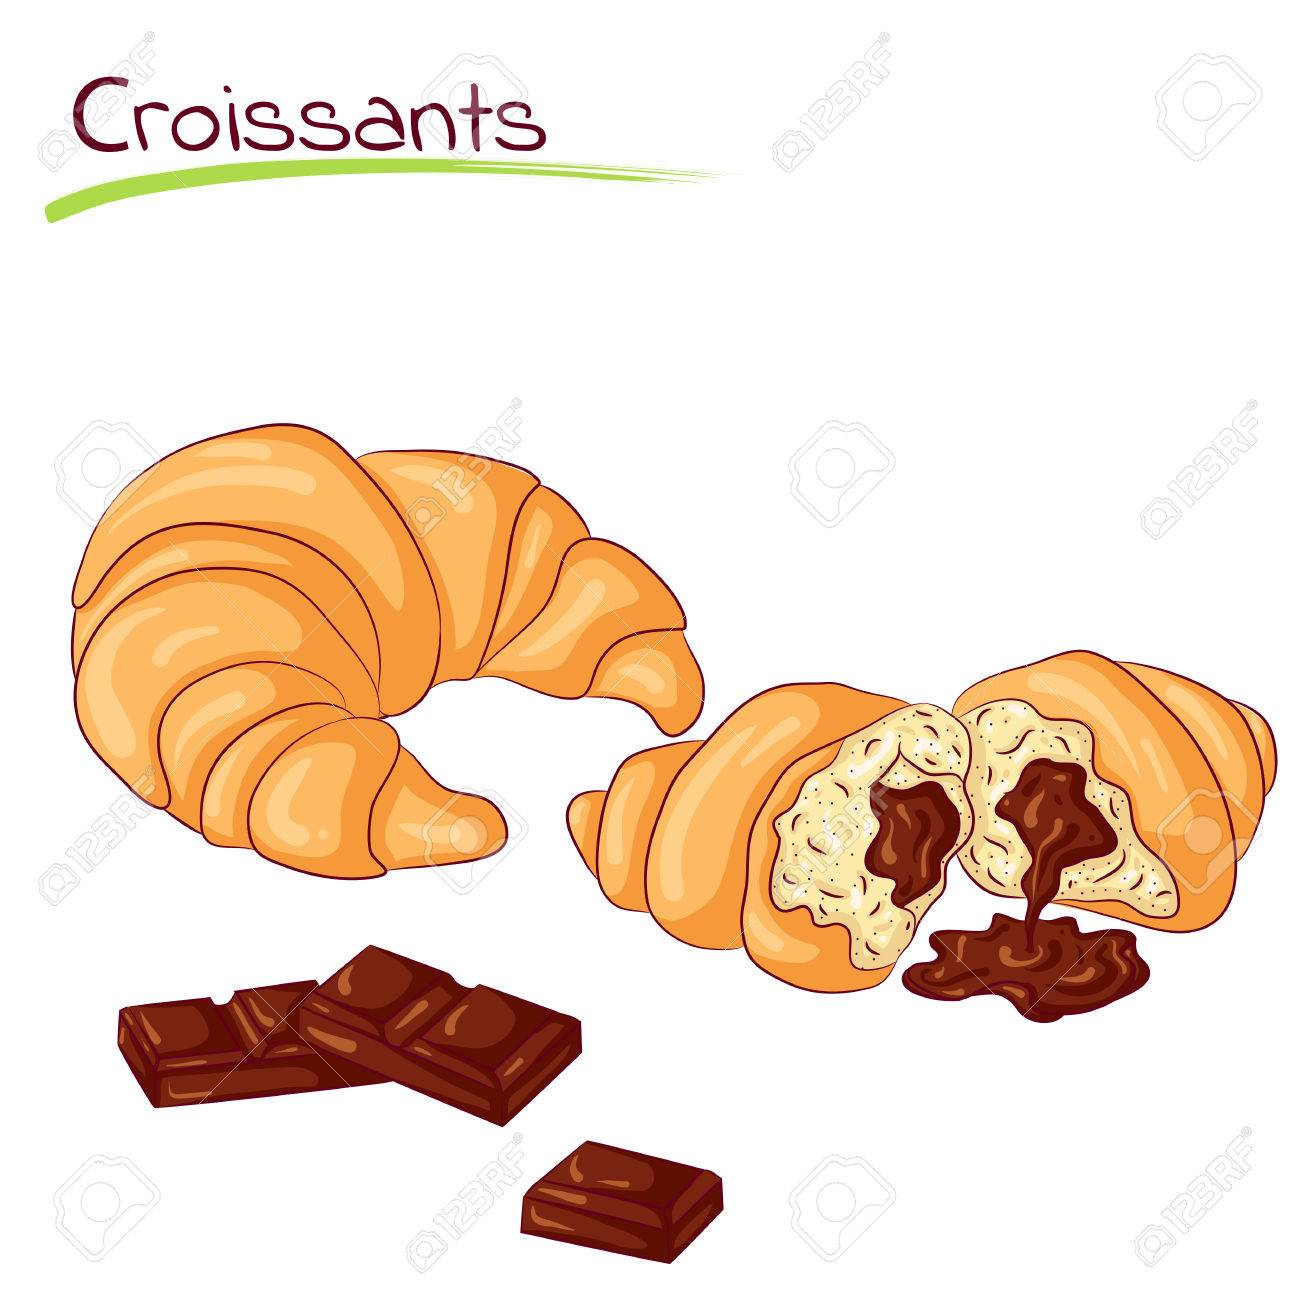 Croissants with chocolate.